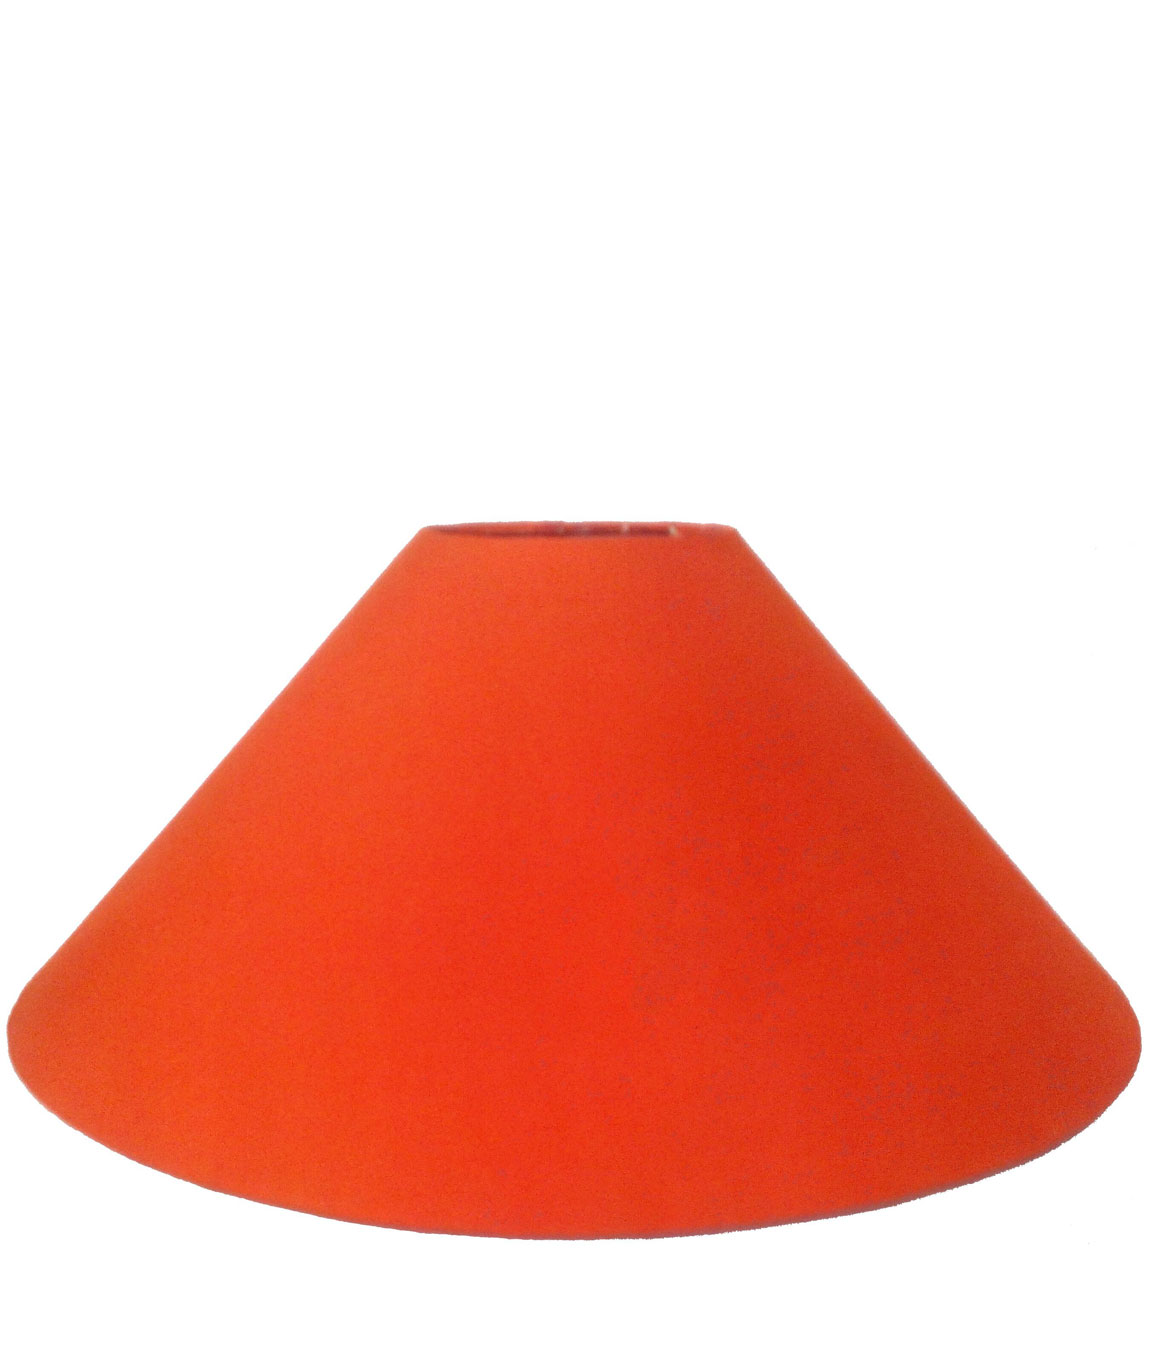 RDC 13 Inches Round Plain Orange Lamp Shade for Table Lamp